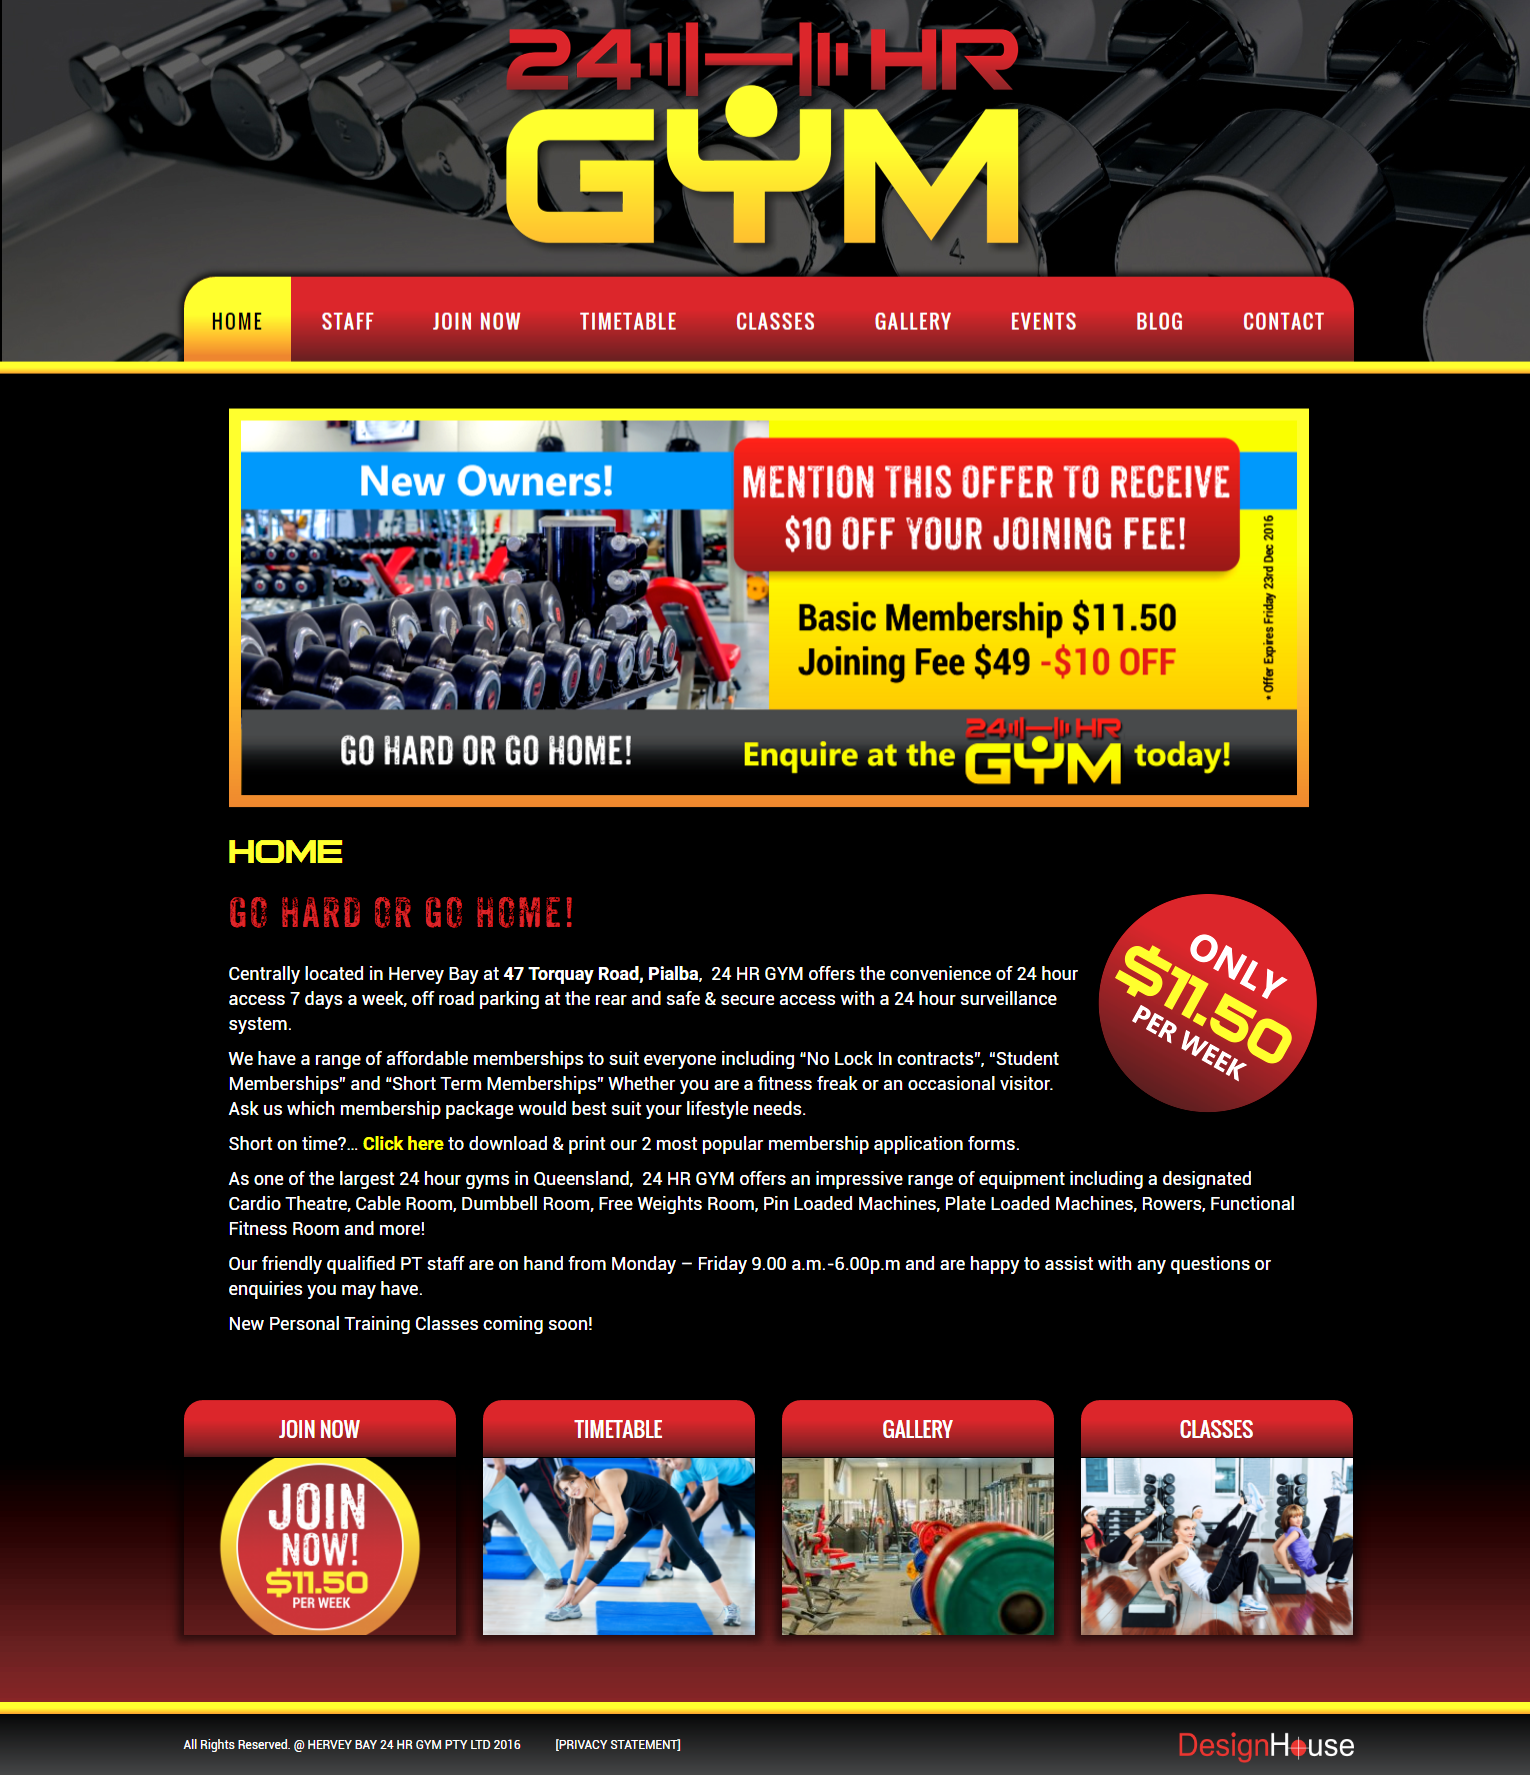 Hervey Bay 24 HR Gym,  Design House, Graphic Design, Print, Website Design, Web, WordPress, Development, Hosting, Business Cards, Logos, Billboards, Social Media, Facebook, Hervey Bay, Fraser Coast, Australia, Sunshine Coast, Noosa, Gympie, Nambour, Brisbane, Maryborough, Queensland, Jeanette Maynes,